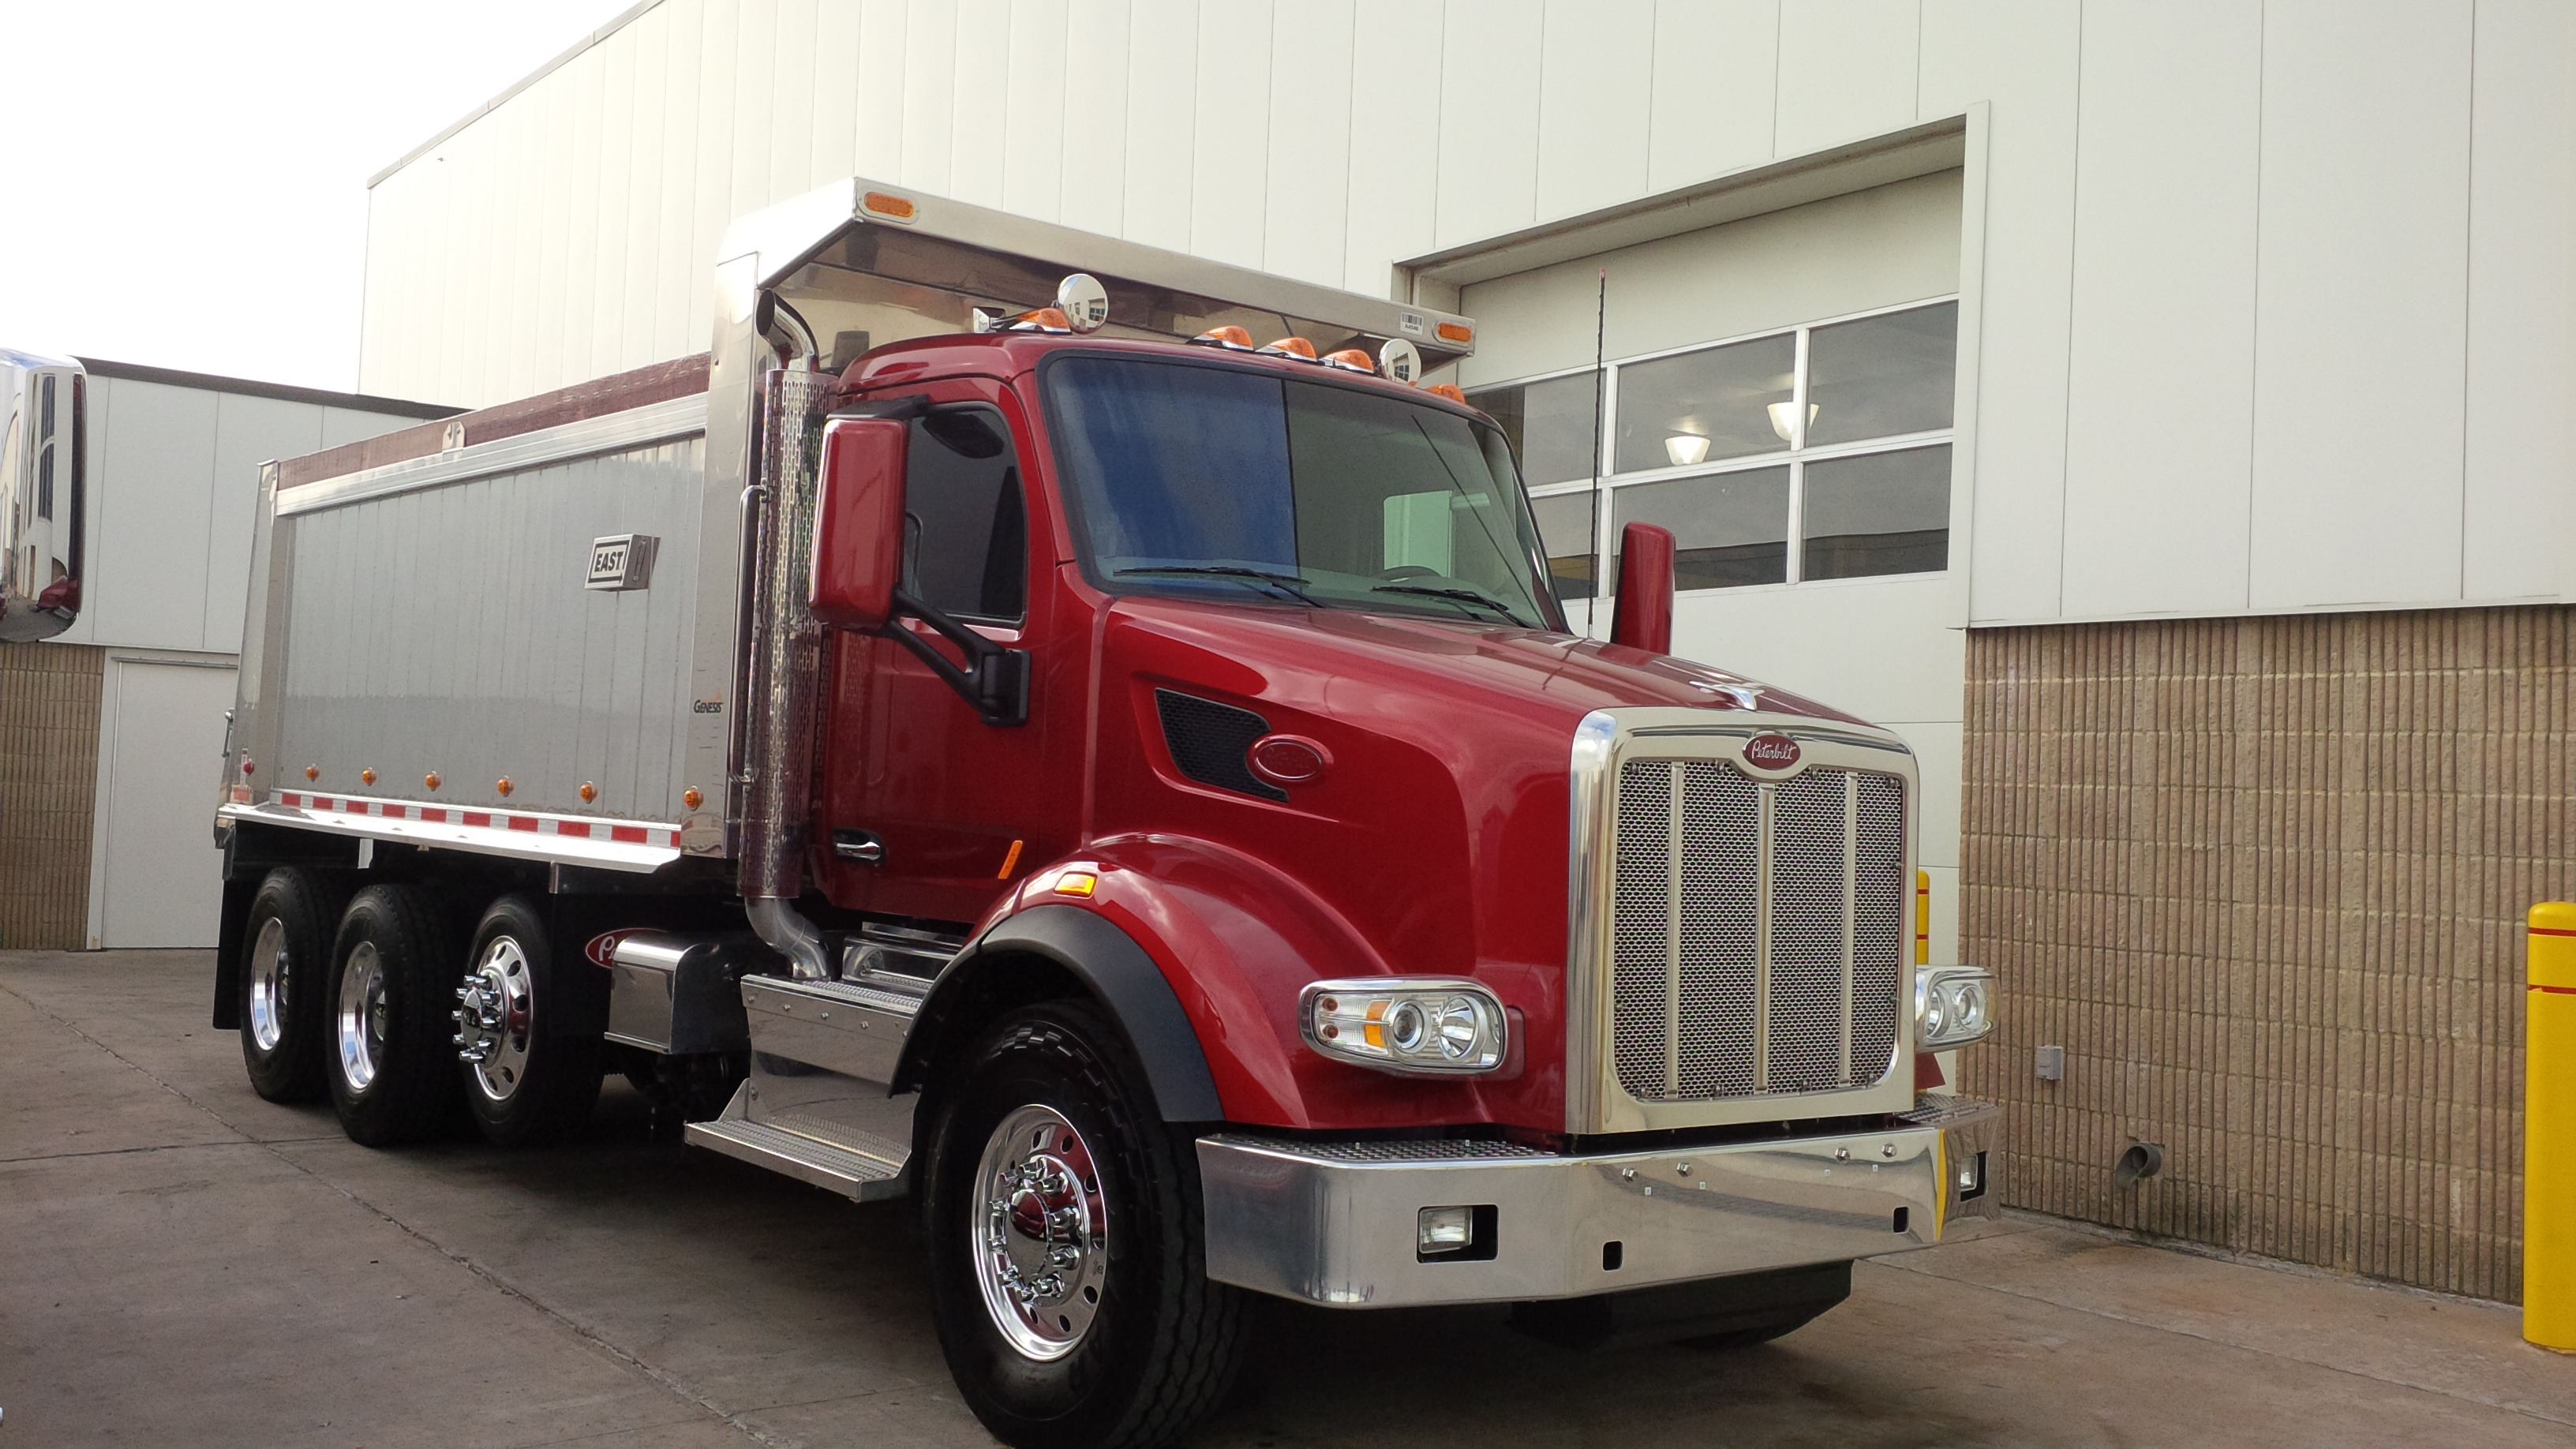 The Peterbilt Model 567 Vocational Truck Truck News HD Wallpapers Download free images and photos [musssic.tk]